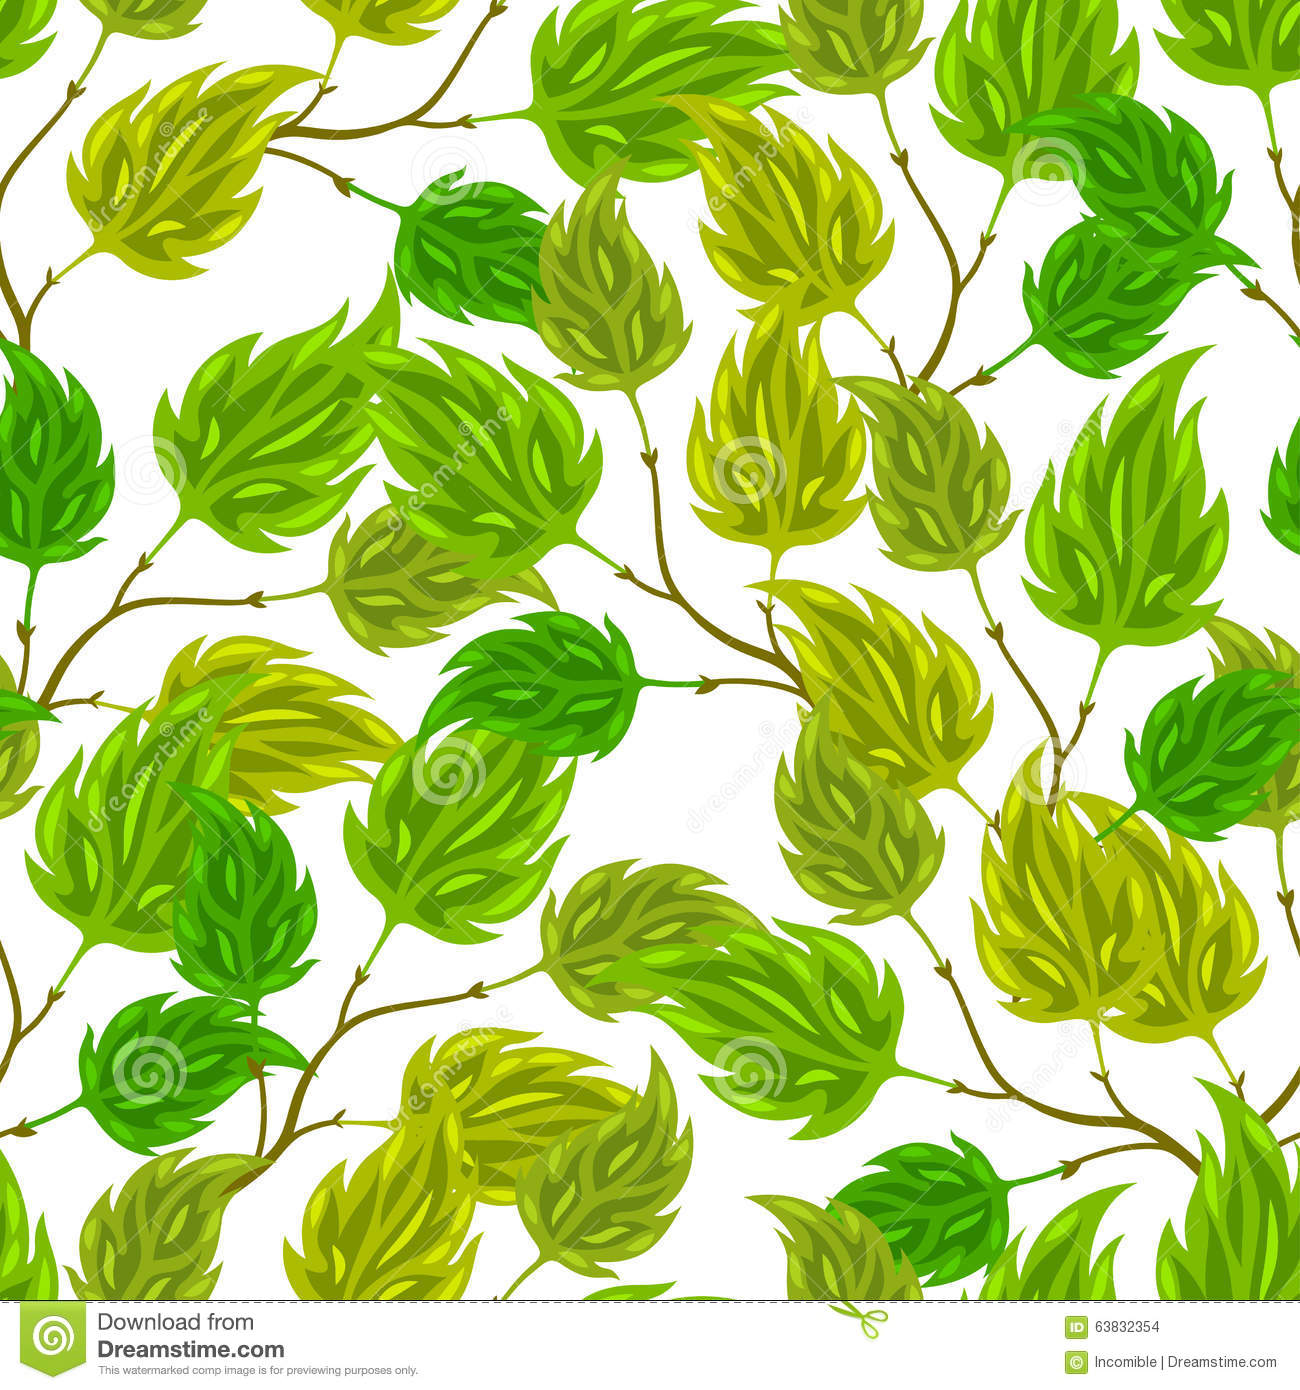 Seamless nature pattern with stylized green leaves